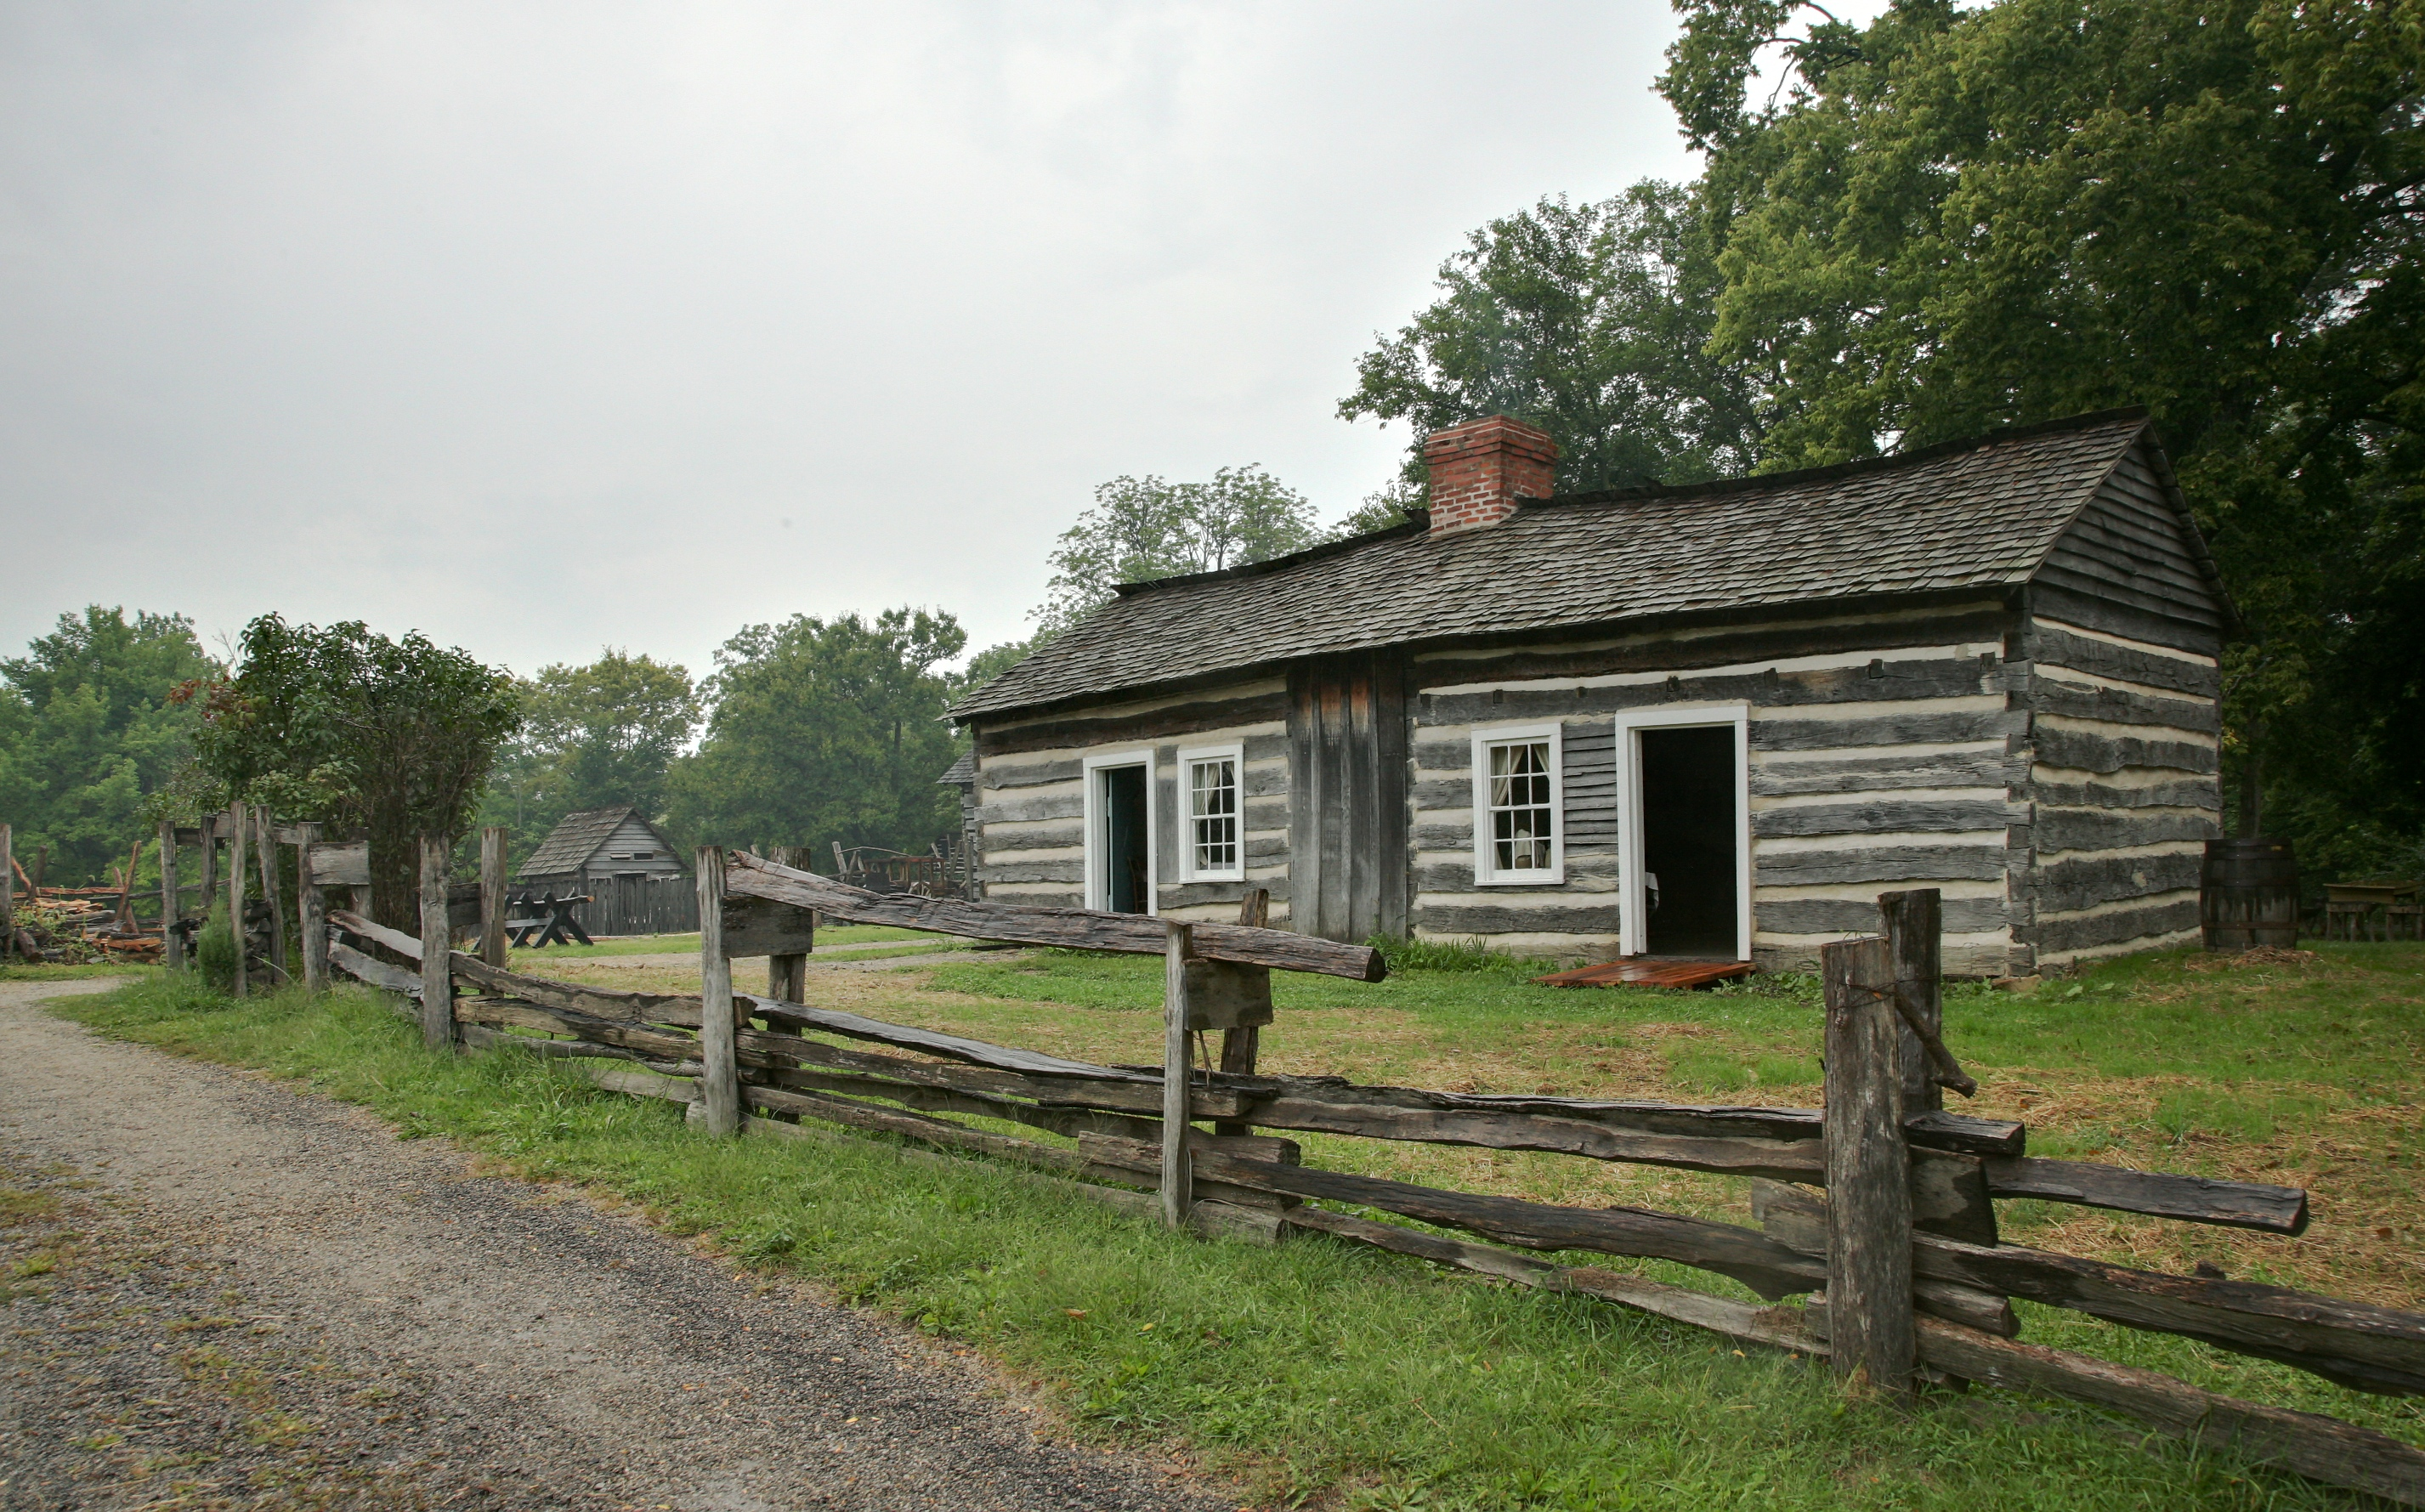 Very Impressive portraiture of Lincoln Log Cabin State Historic Site with #4E5F32 color and 2853x1779 pixels